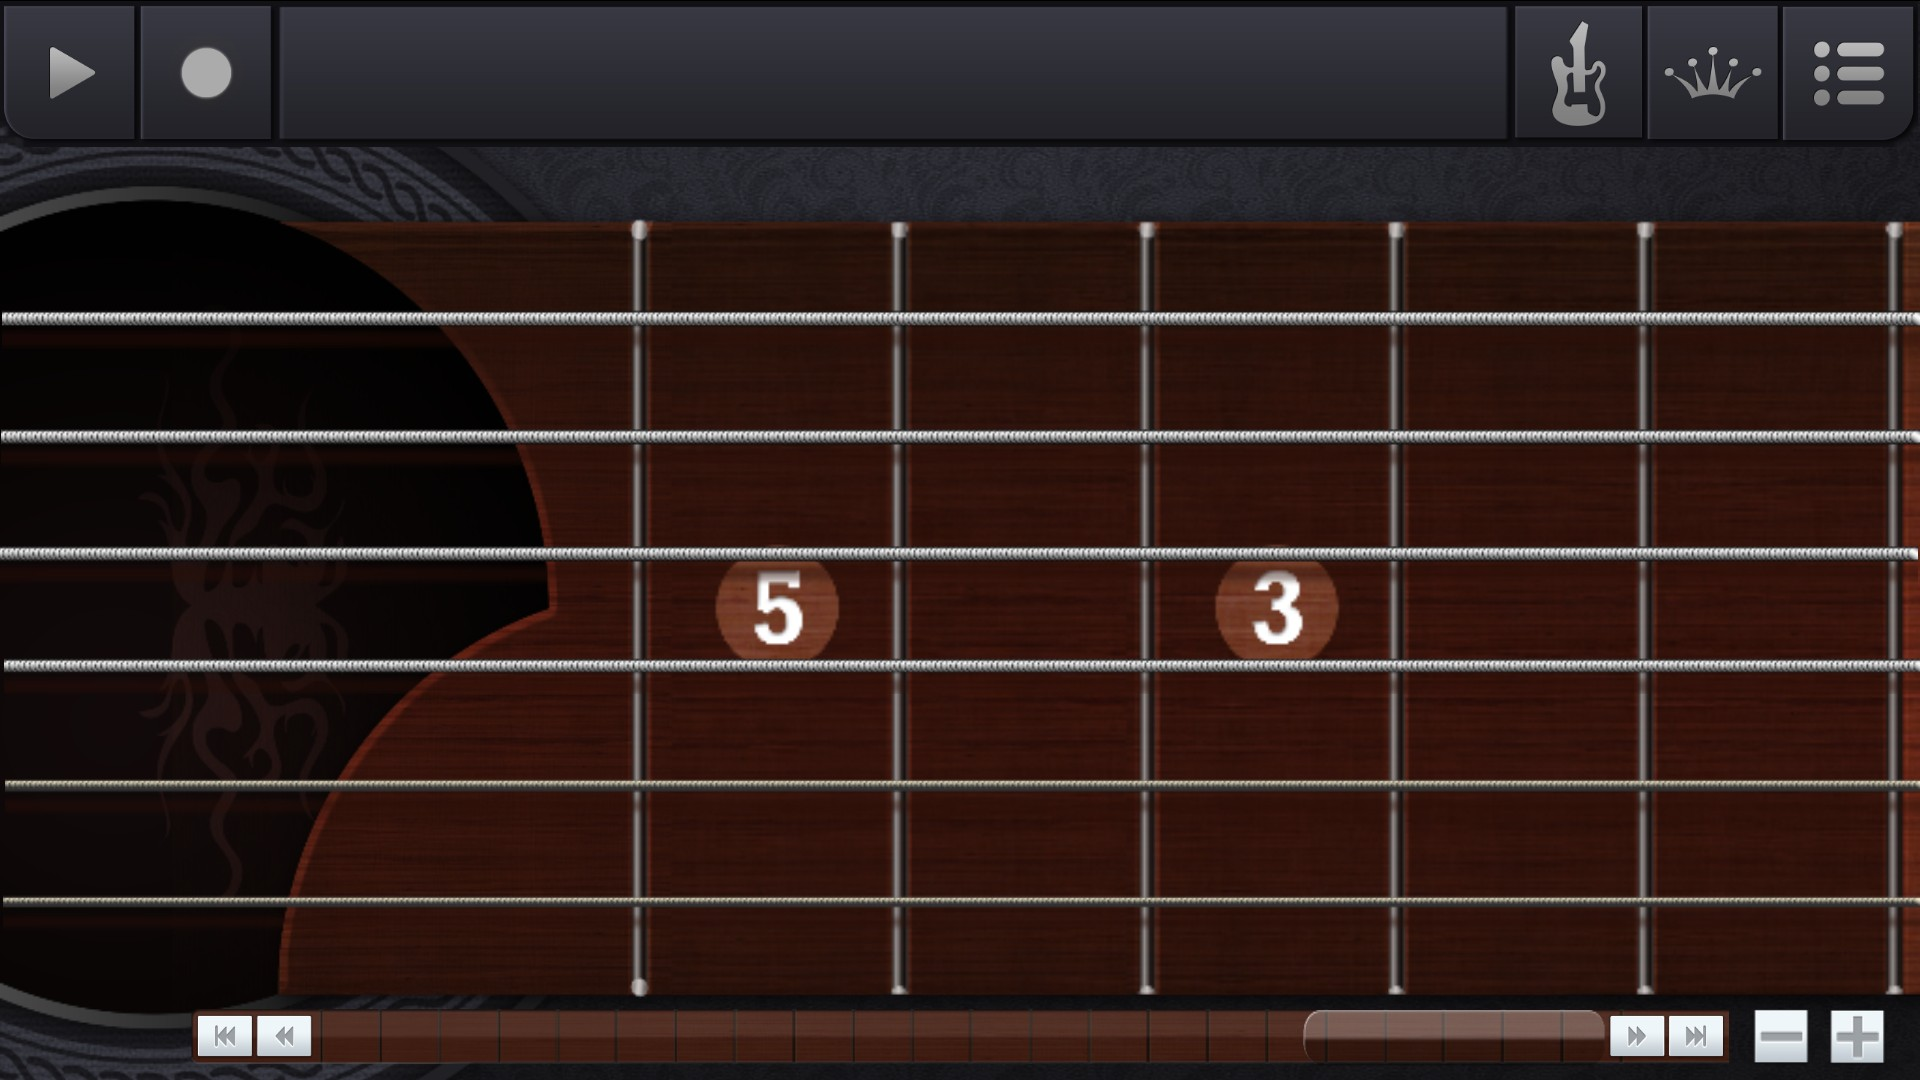 Guitar Lessons | Learn Guitar From Free Online Video Lessons